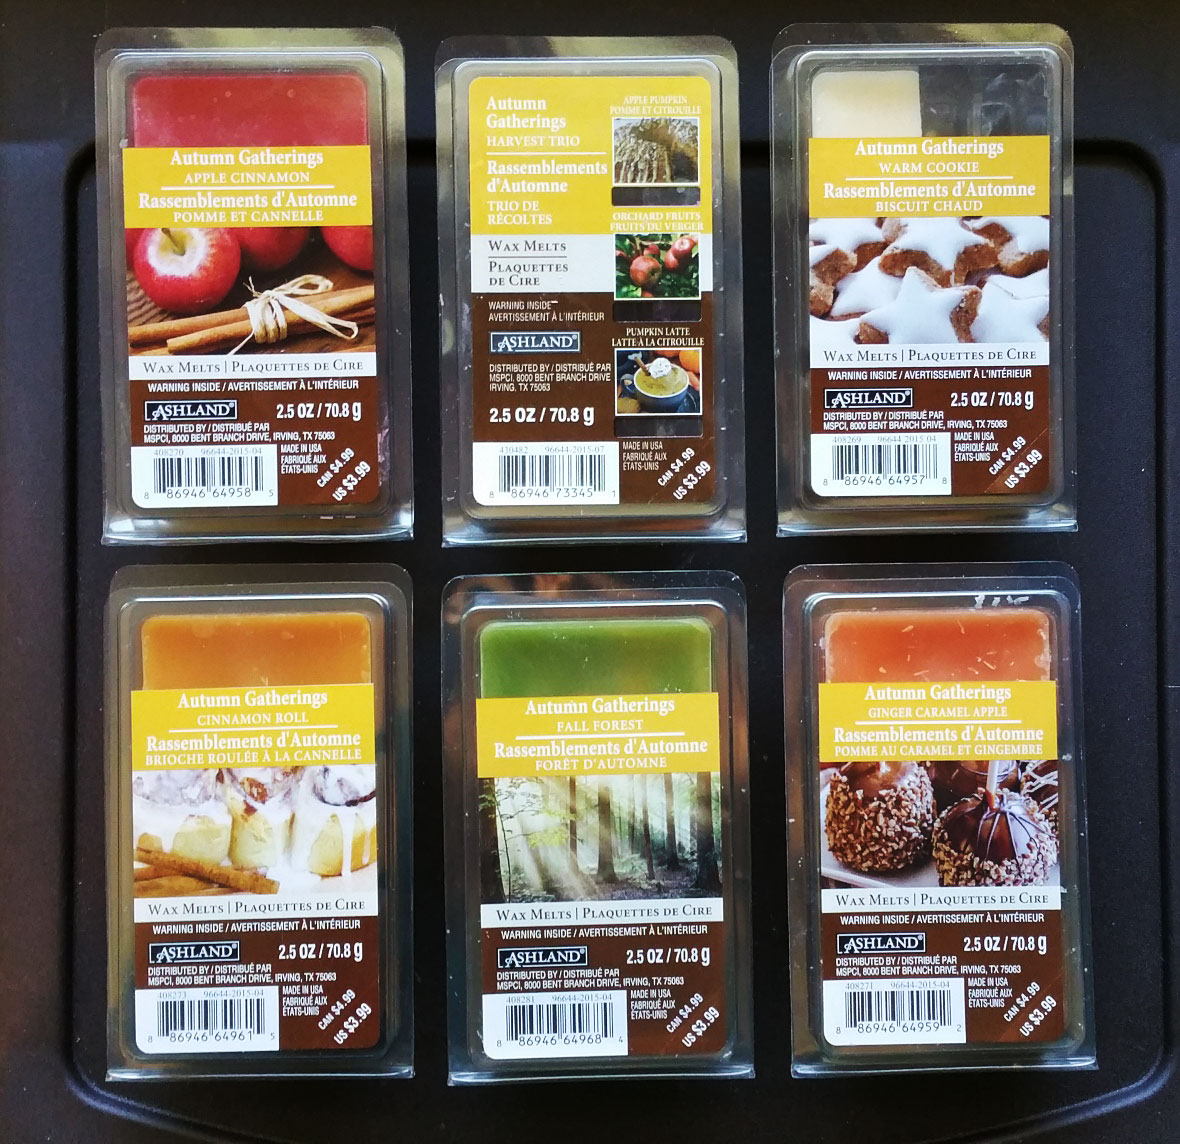 scented wax melt reviews ashland autumn gatherings scented wax melts review. Black Bedroom Furniture Sets. Home Design Ideas